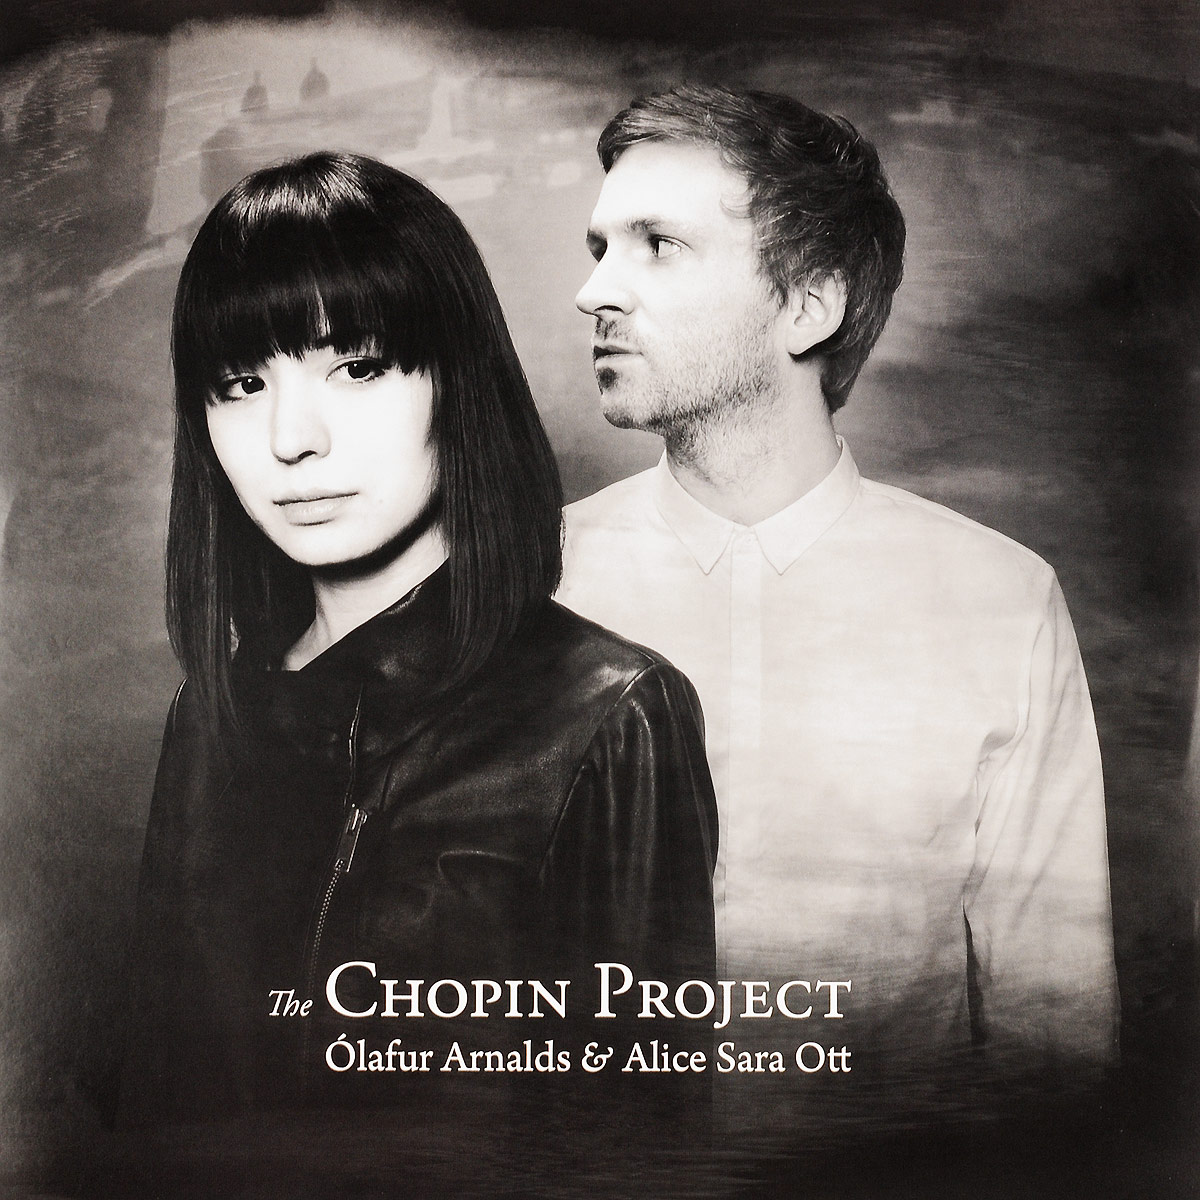 Олафур Арналдс,Элис Сара Отт Olafur Arnalds And Alice Sara Ott. The Chopin Project (LP)